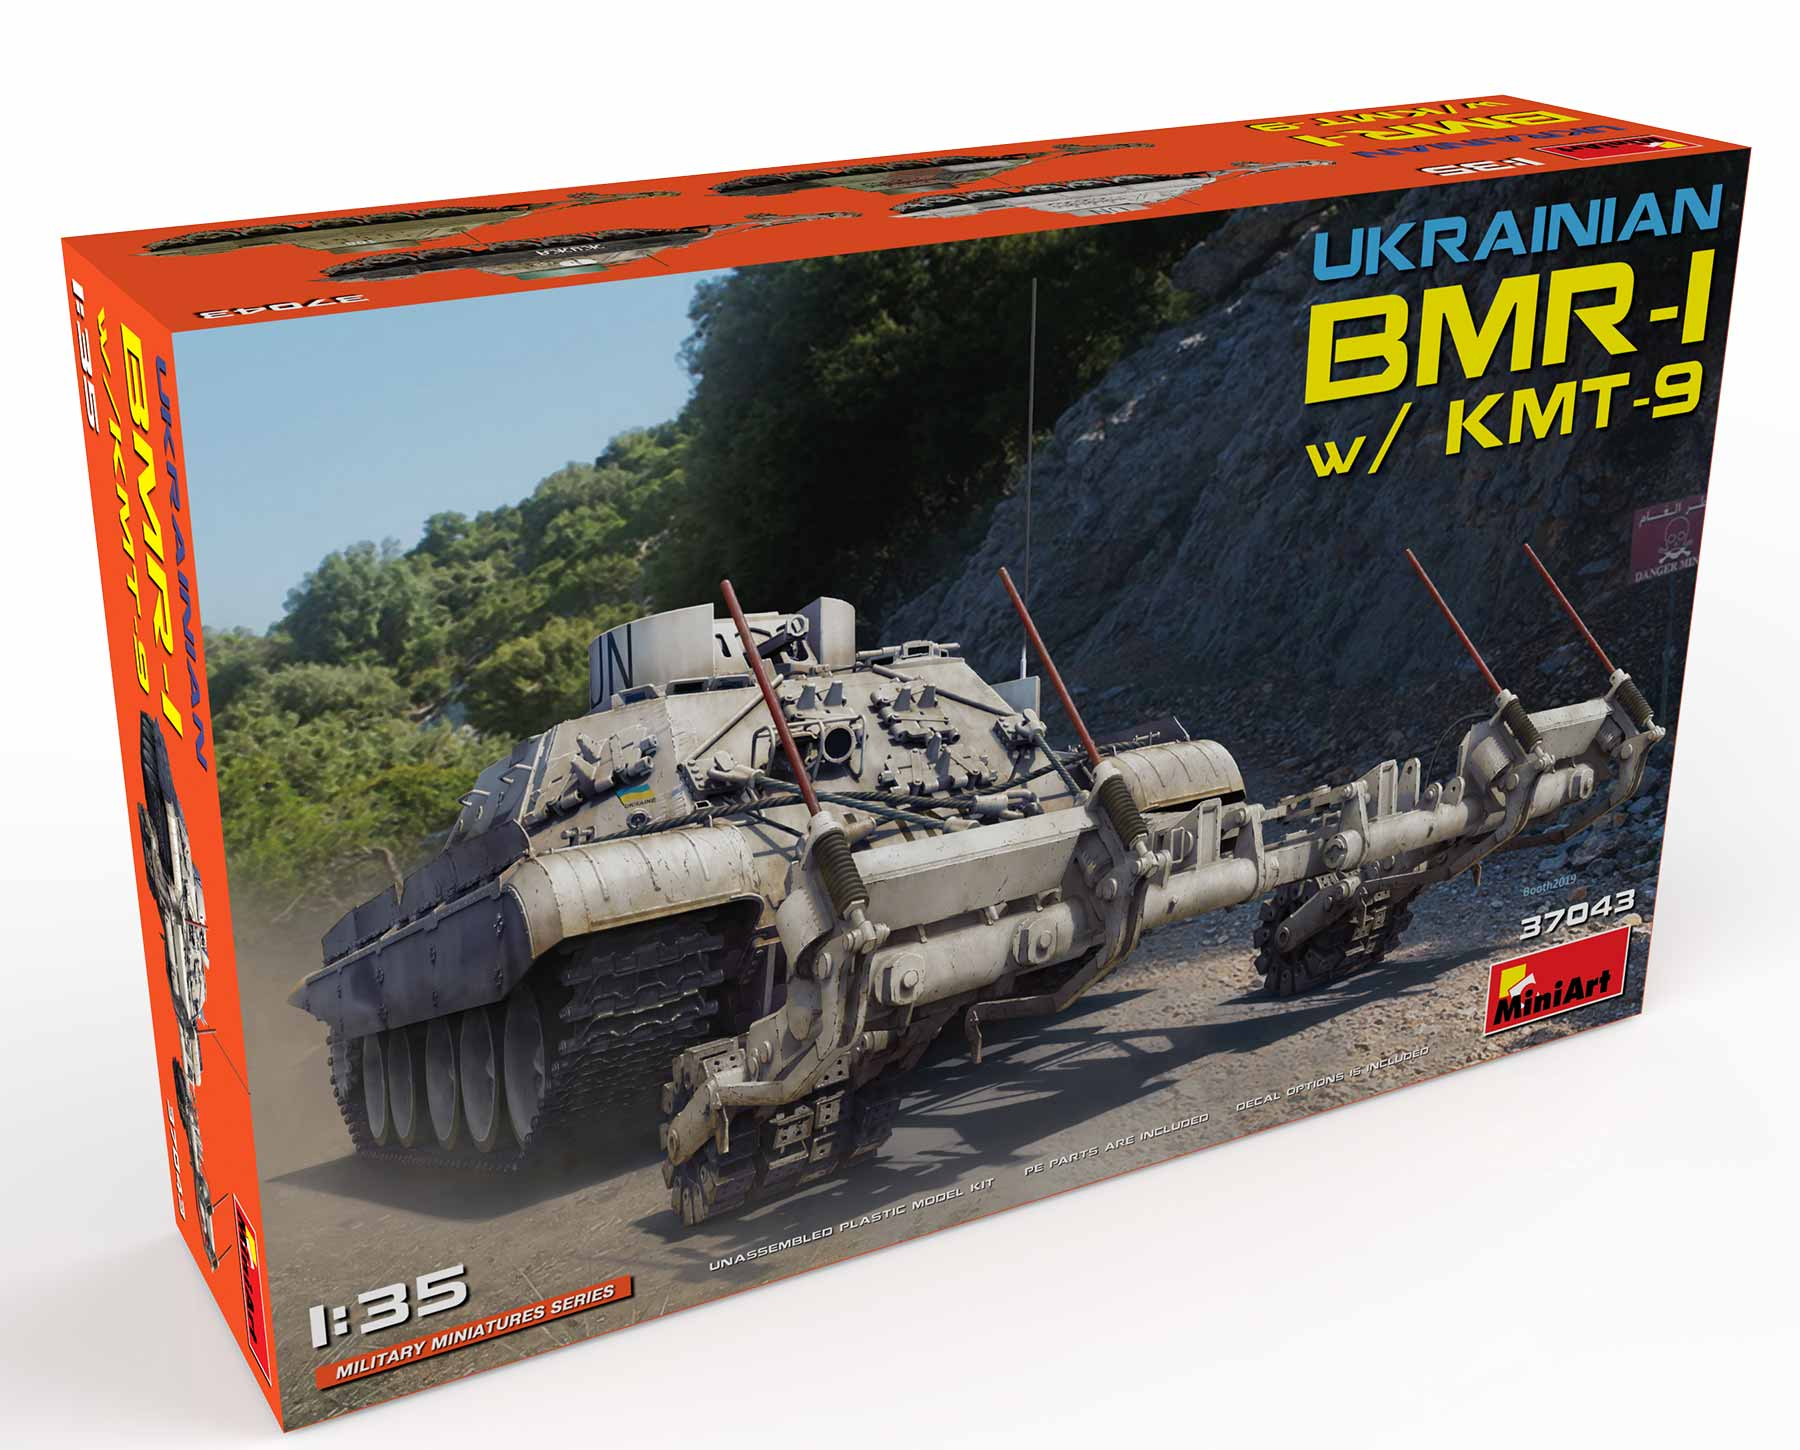 New Photos of Kit: 37043 UKRAINIAN BMR-1 w/KMT-9